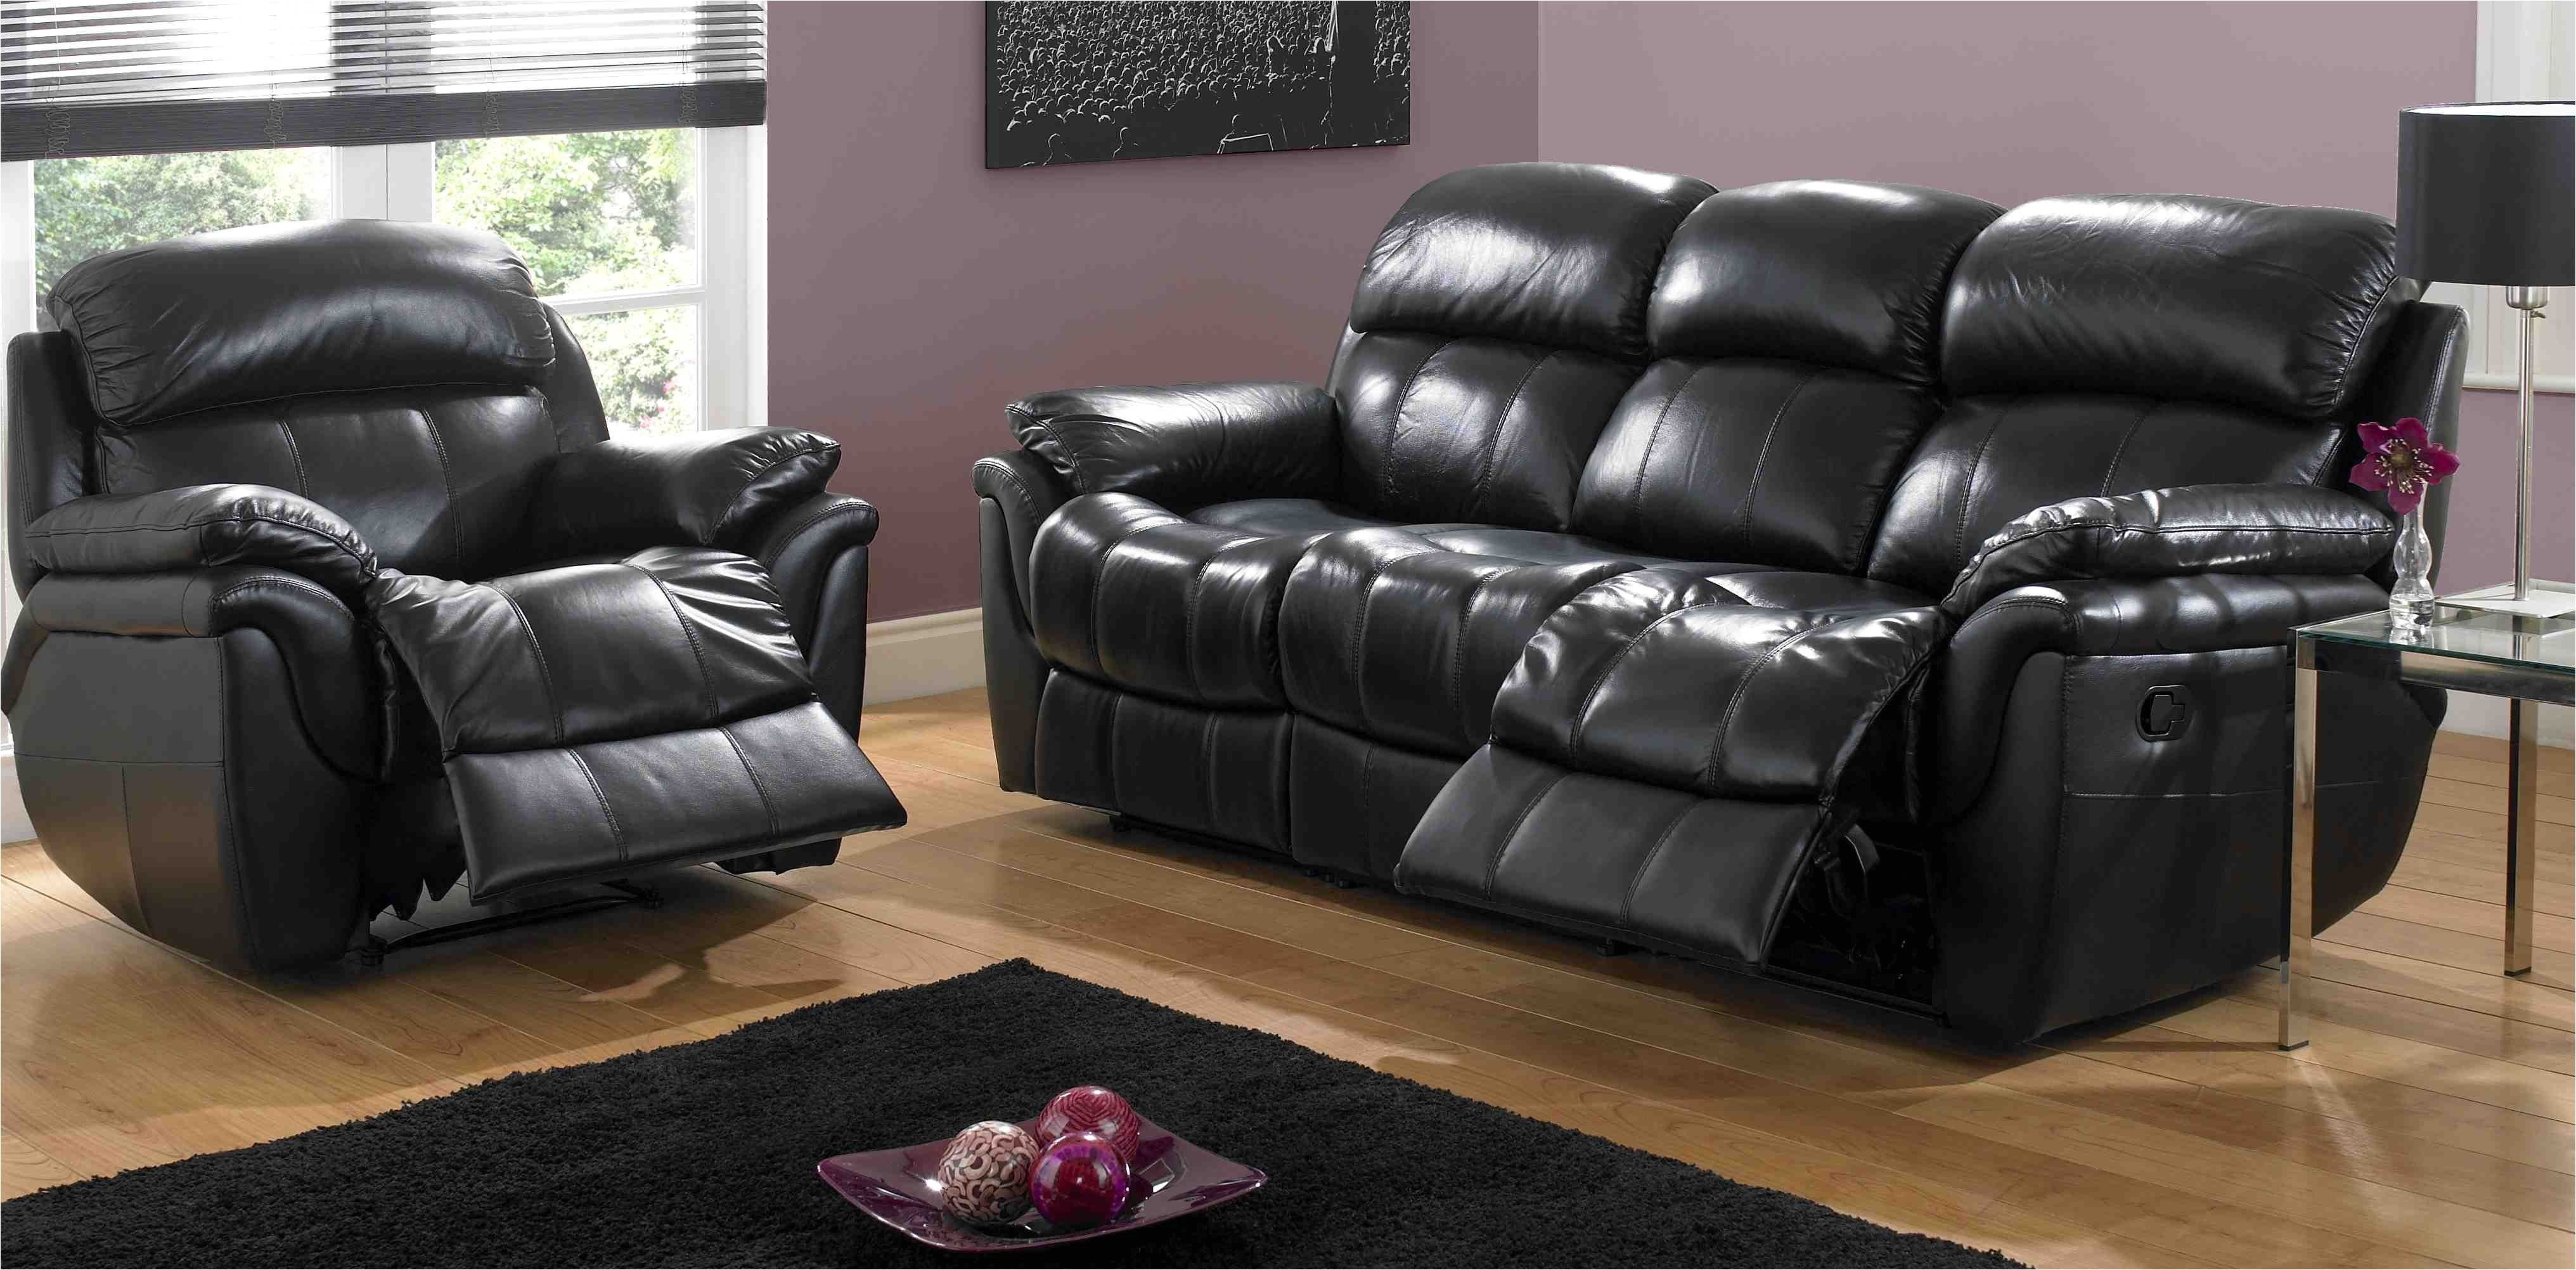 cool roxanne sofa macys amazing home design best under ideass ideas 5 69y home design the